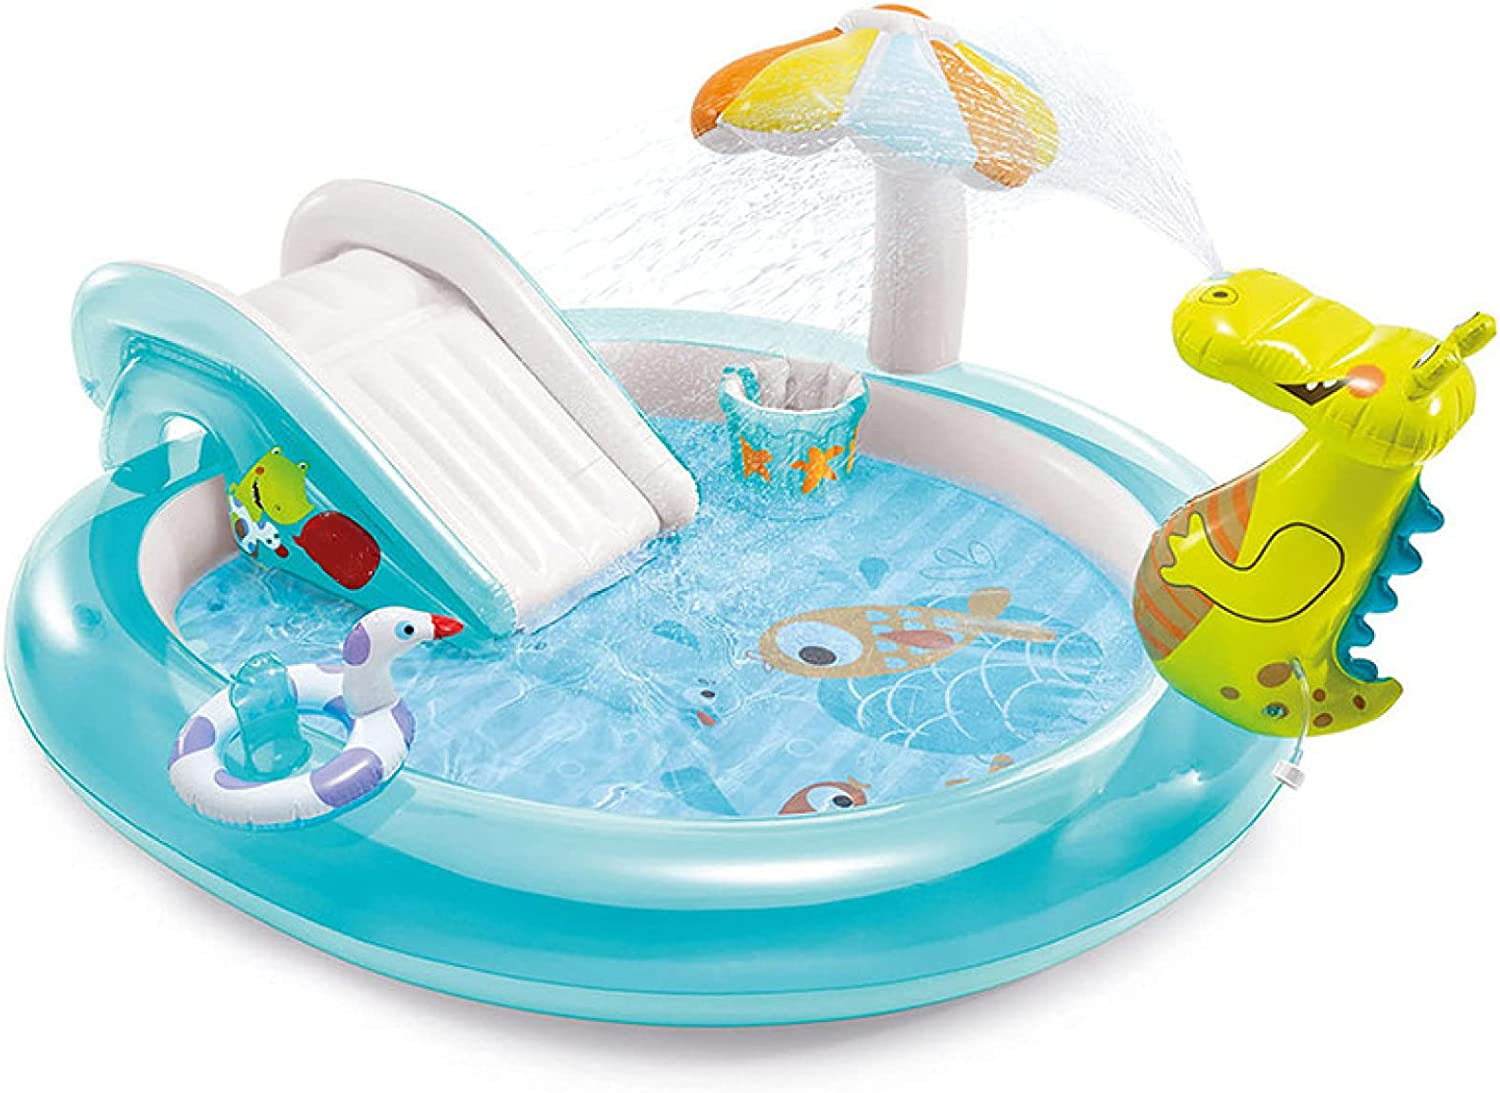 Kids Super Special SALE held Inflatable Pools Gator Play Indianapolis Mall Center Pddling wi